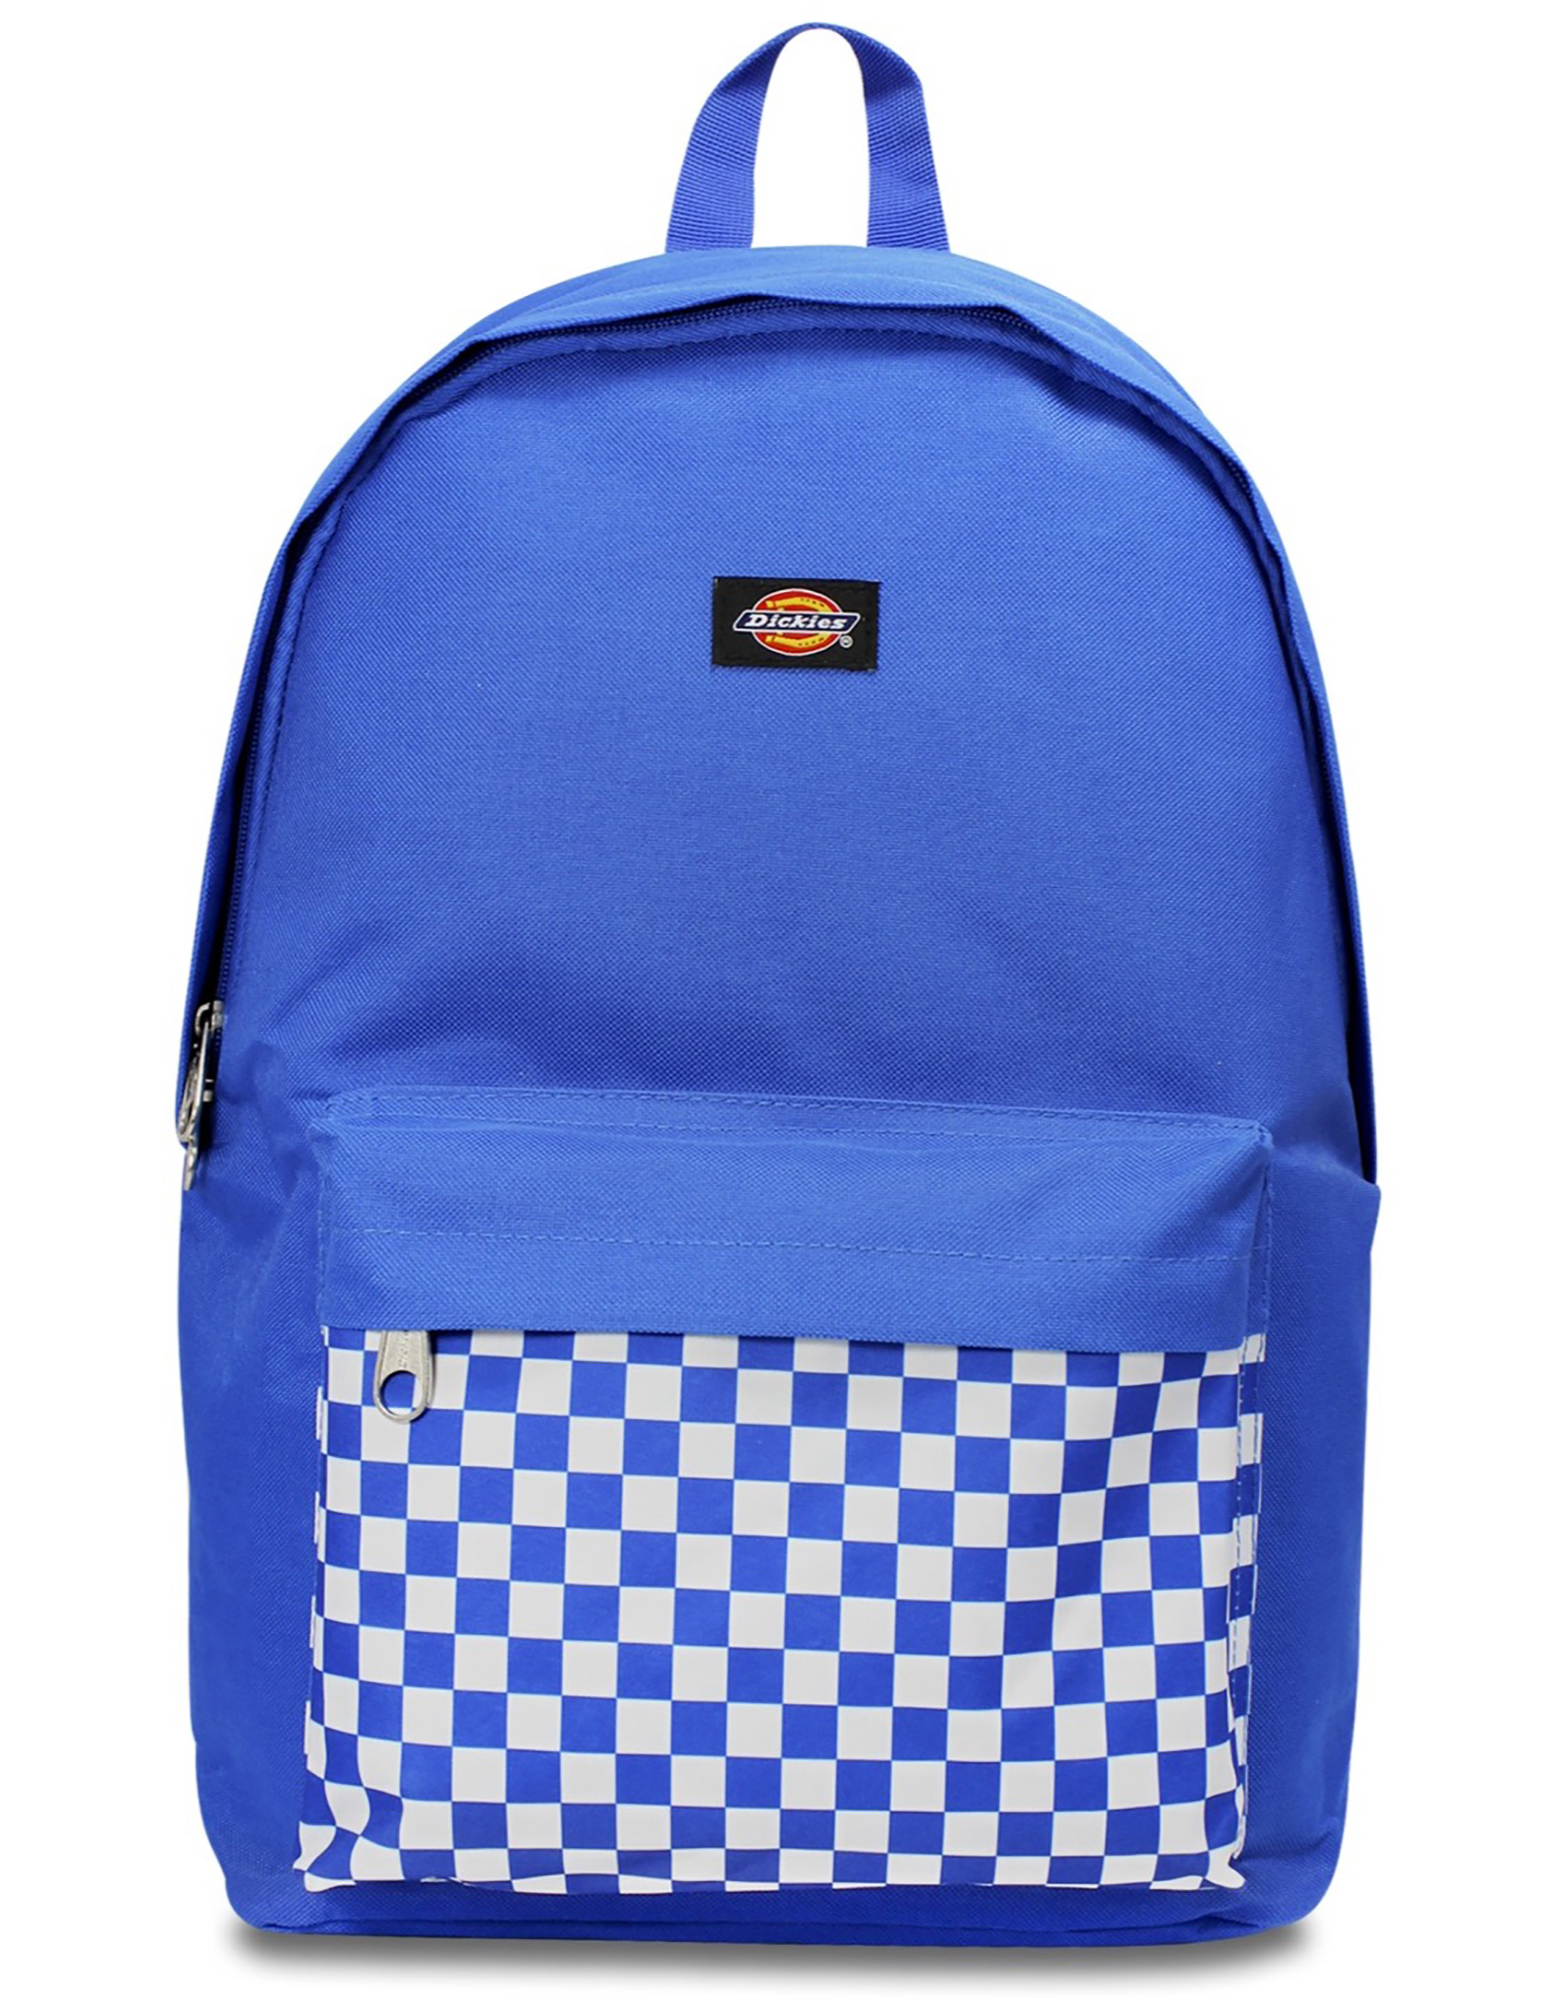 36a394343cf5 The Prep Checkered Backpack, ROYAL - LICENSEE